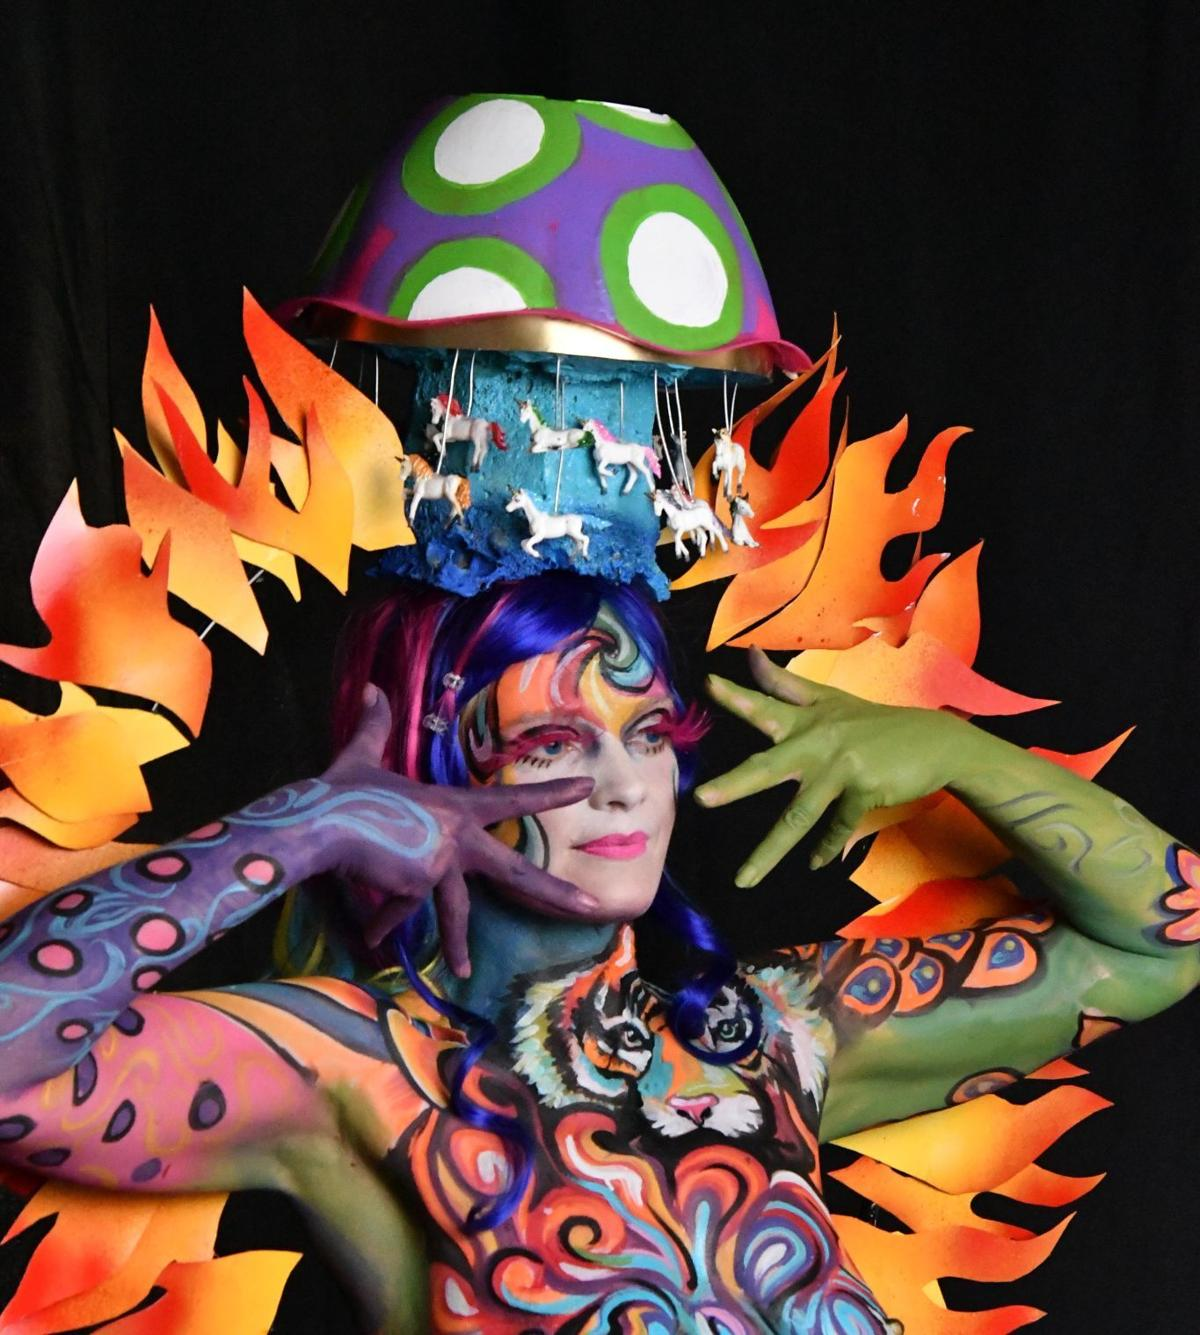 Painting The Town Reidsville Helps Host World Bodypainting Festival Lifestyles Greensboro Com